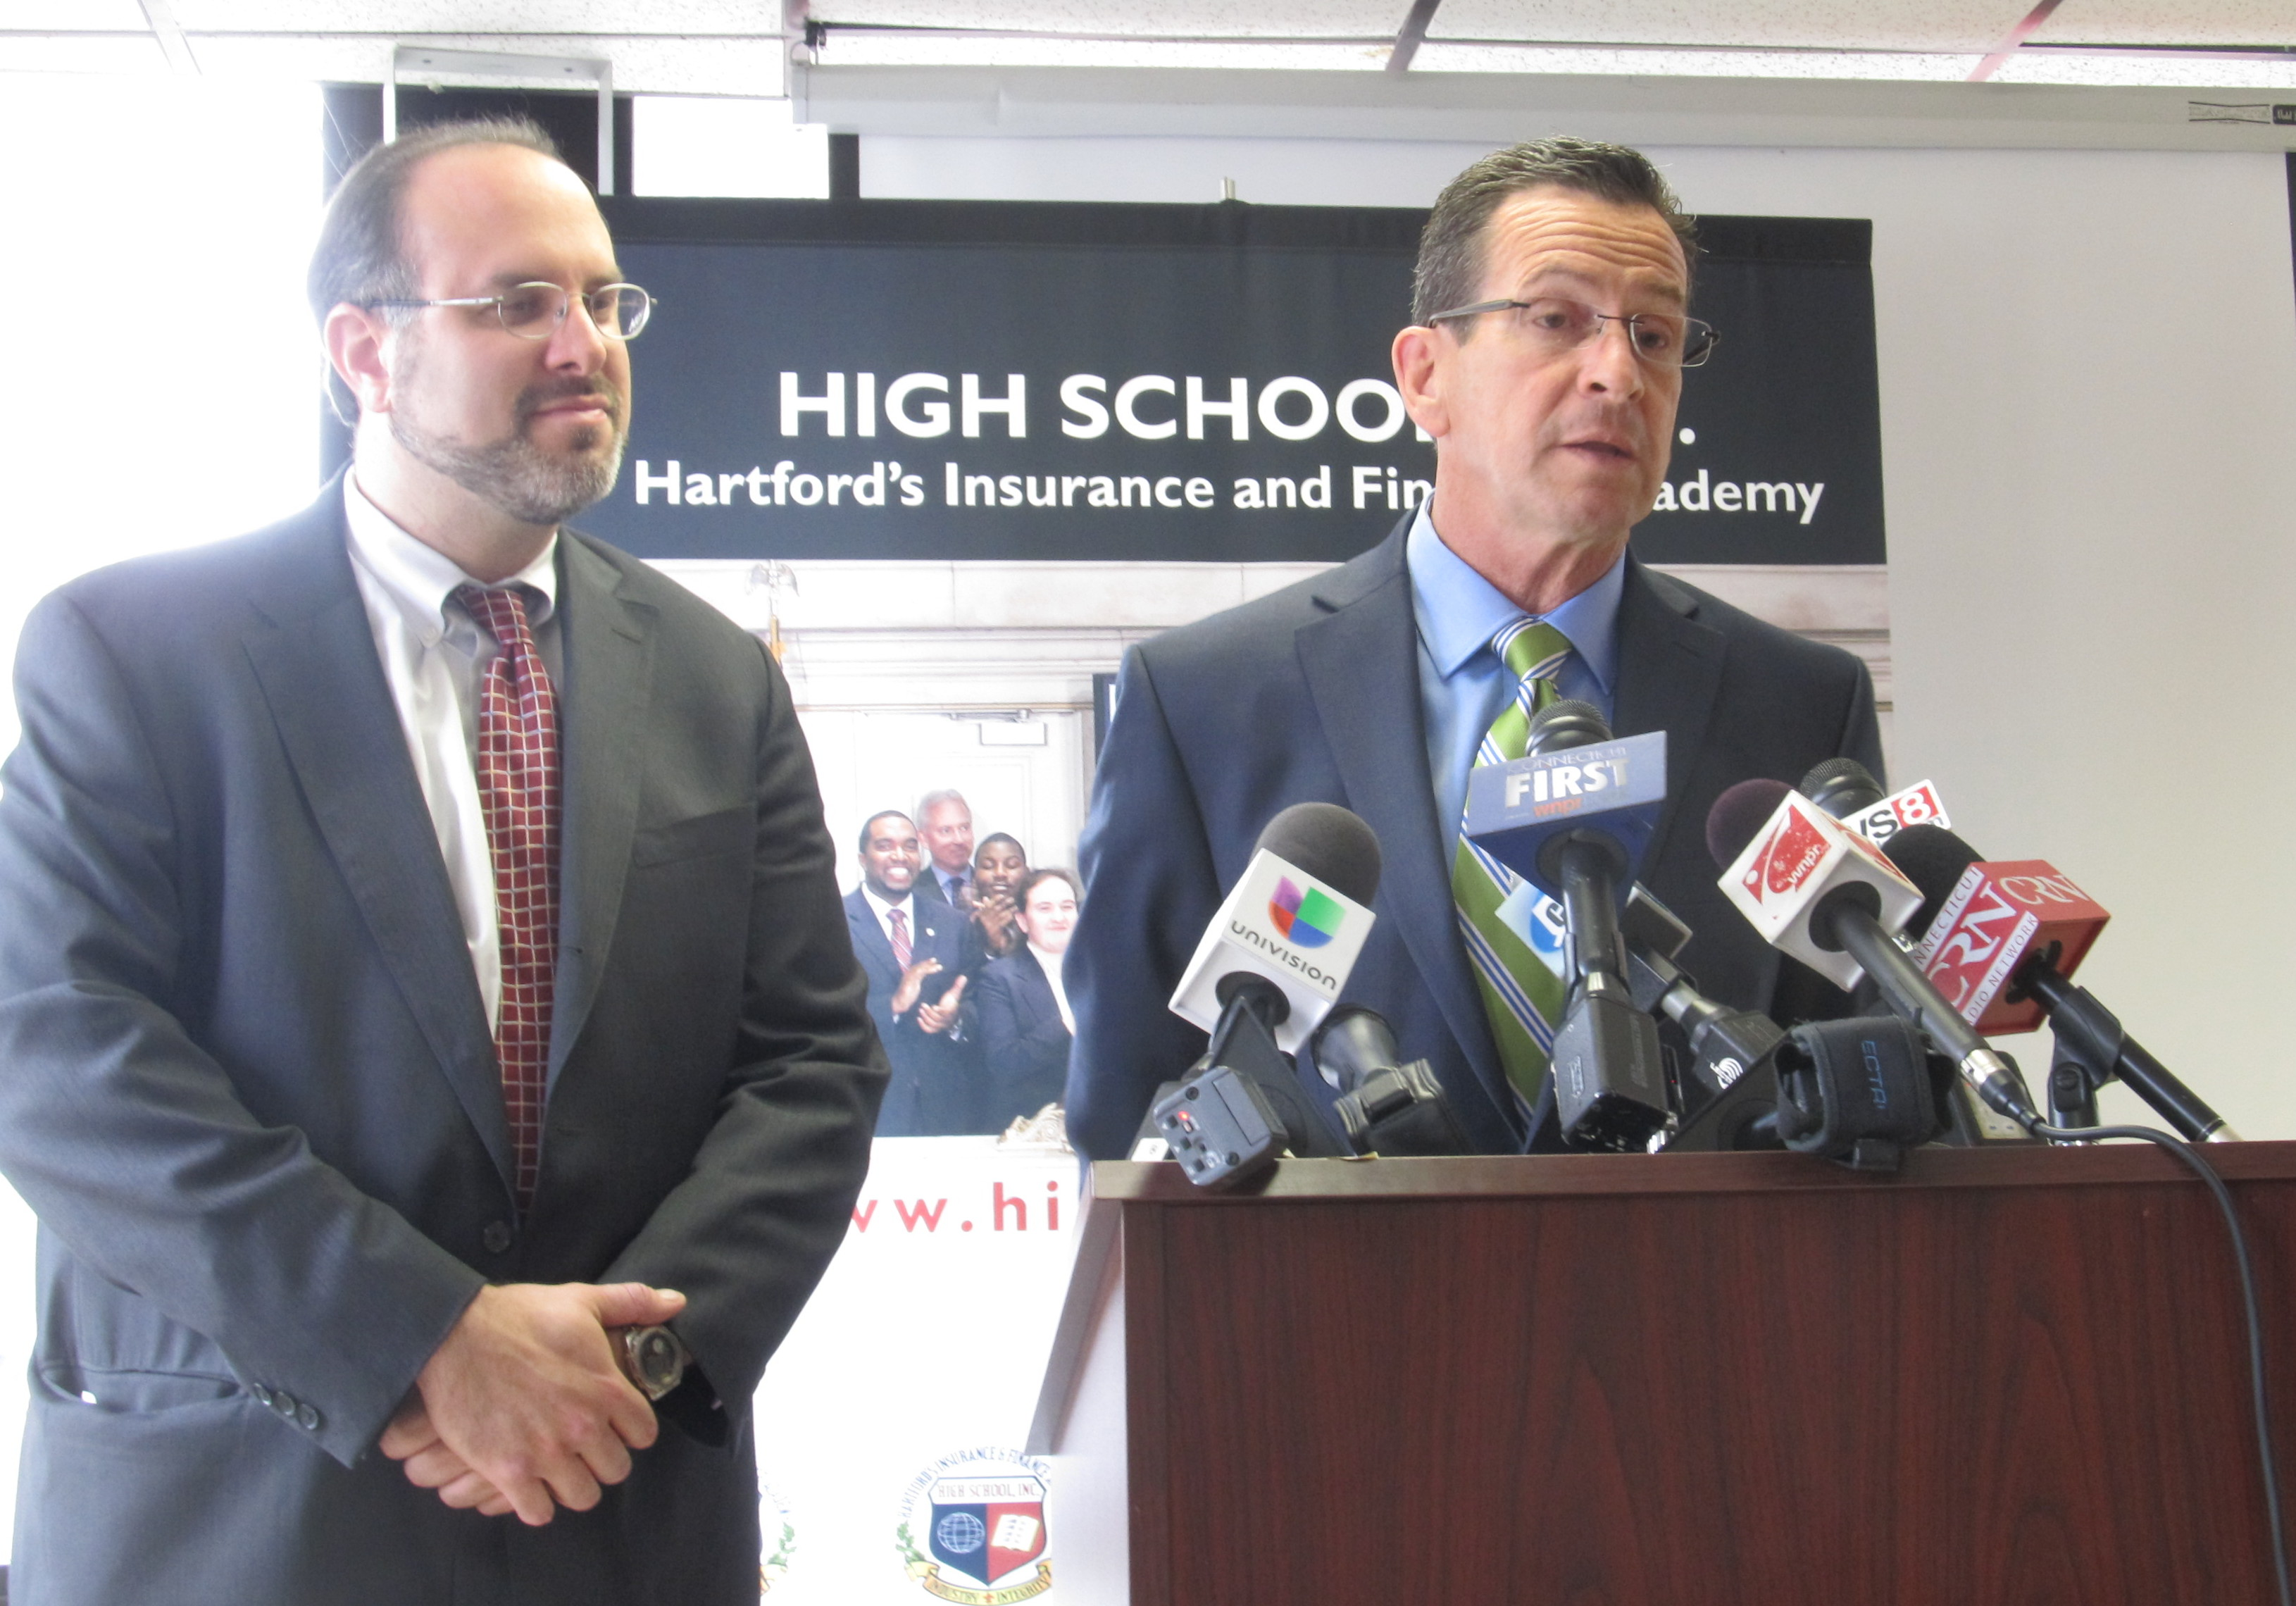 Improved graduation rates give Malloy a campaign talking point